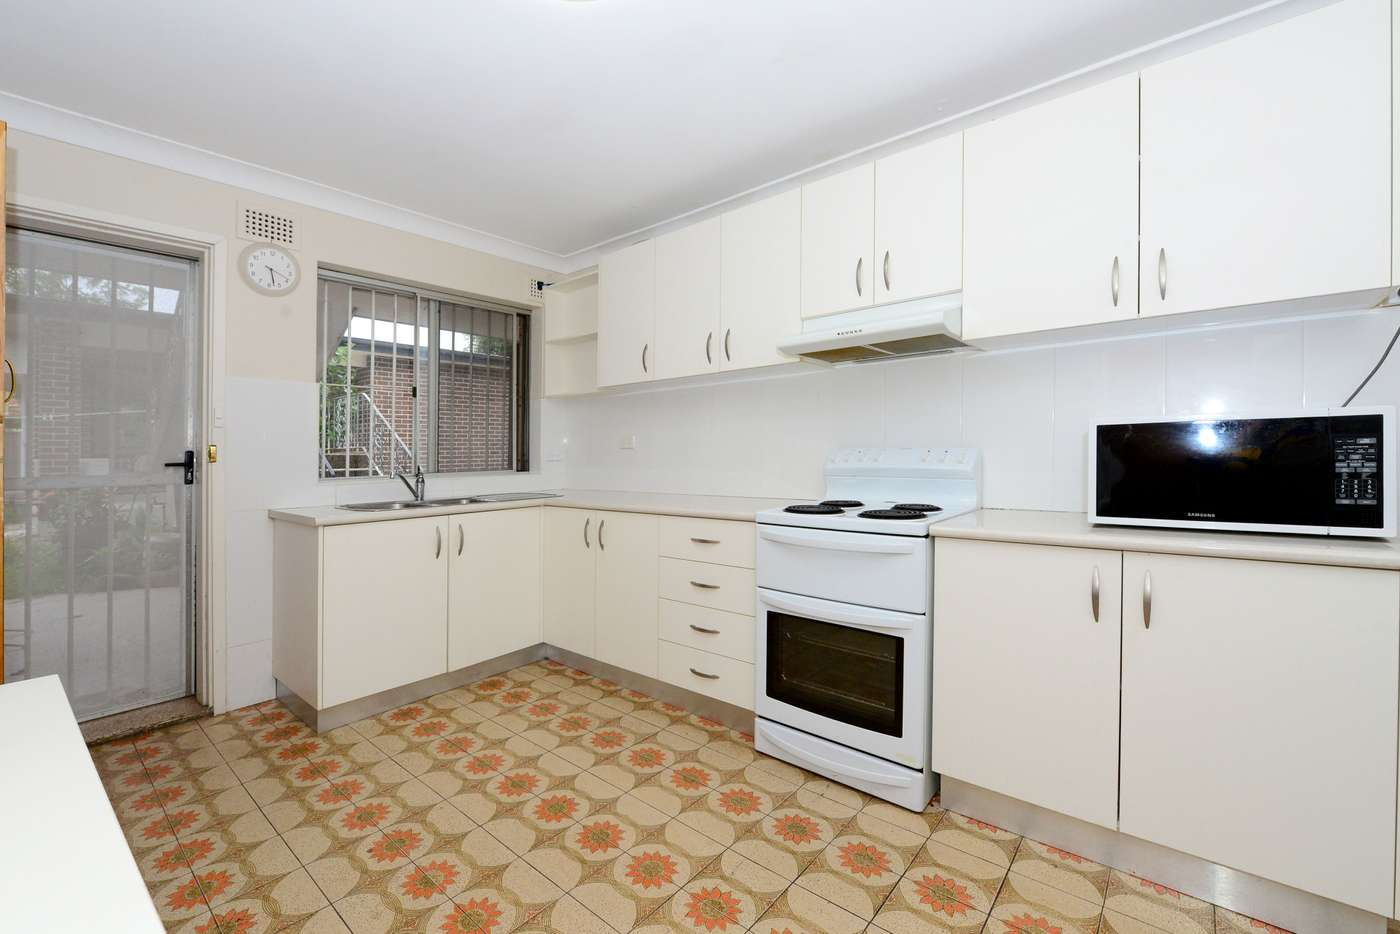 Seventh view of Homely house listing, 80A Harrington Street, Cabramatta West NSW 2166